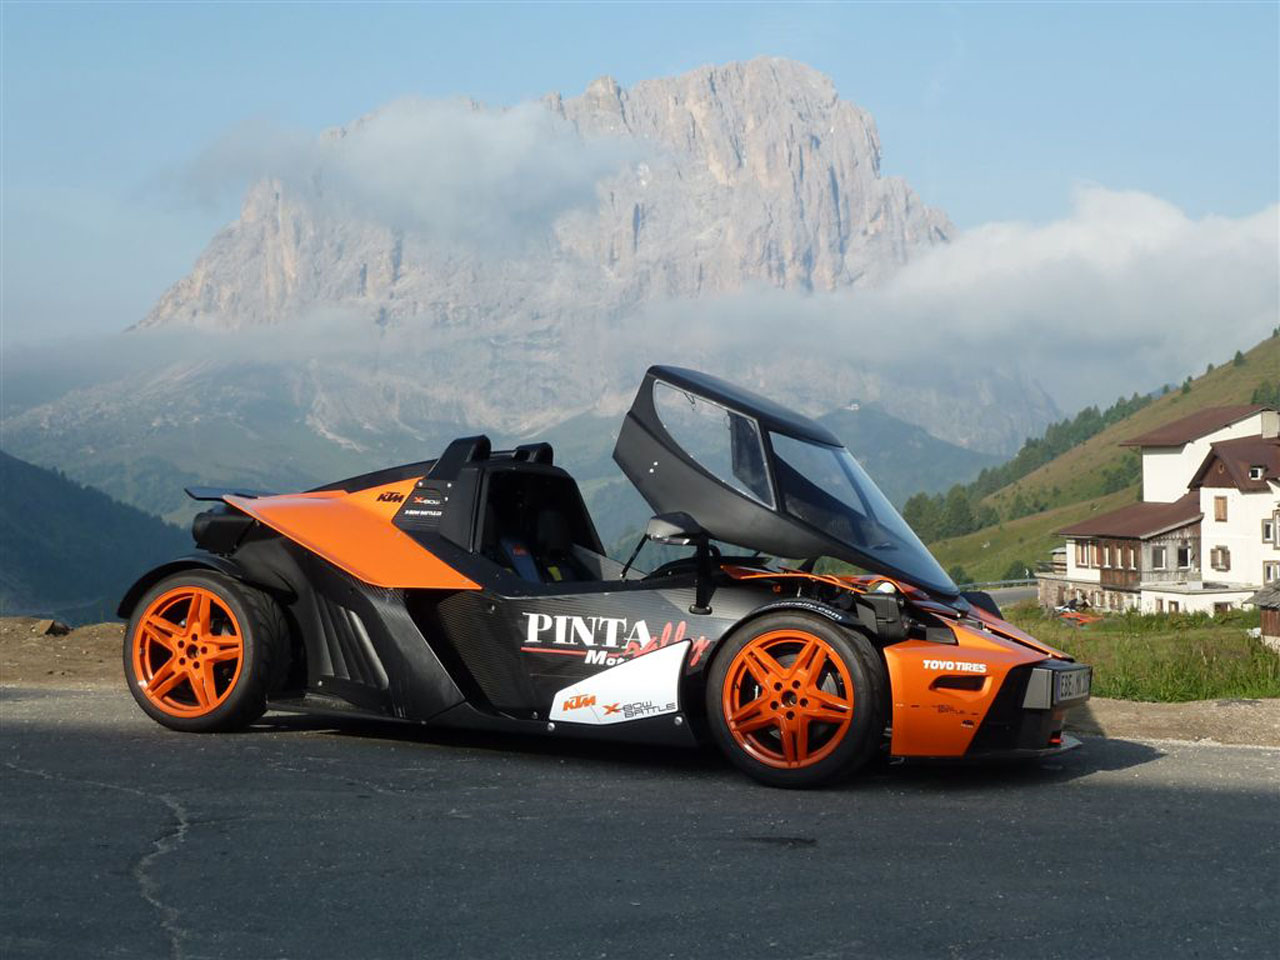 KTM X-Bow Monte Carlo by Montenergy Photo Gallery - Autoblog